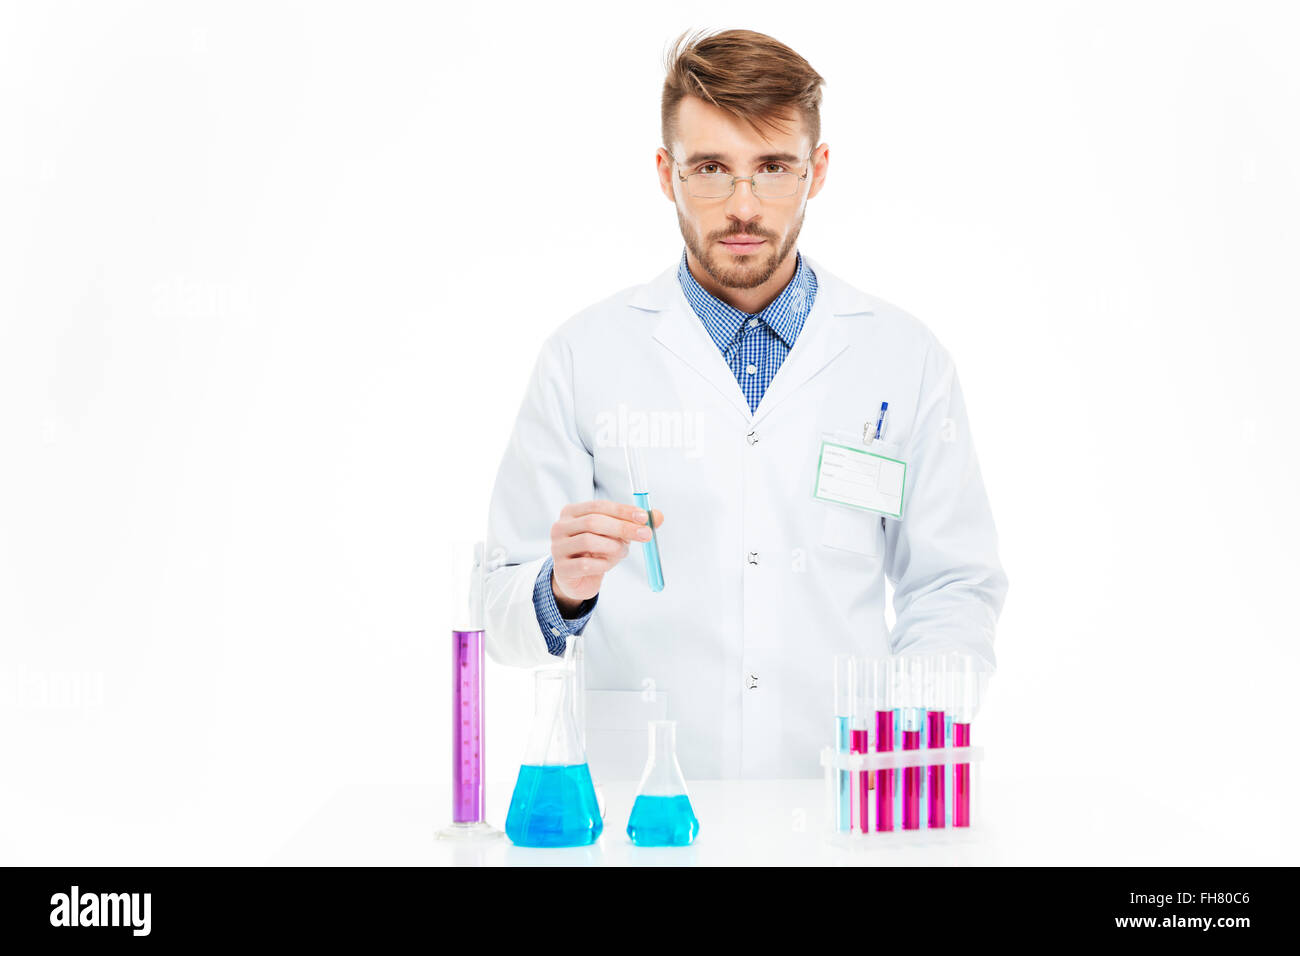 Scientist pouring chemicals in a laboratory - Stock Image